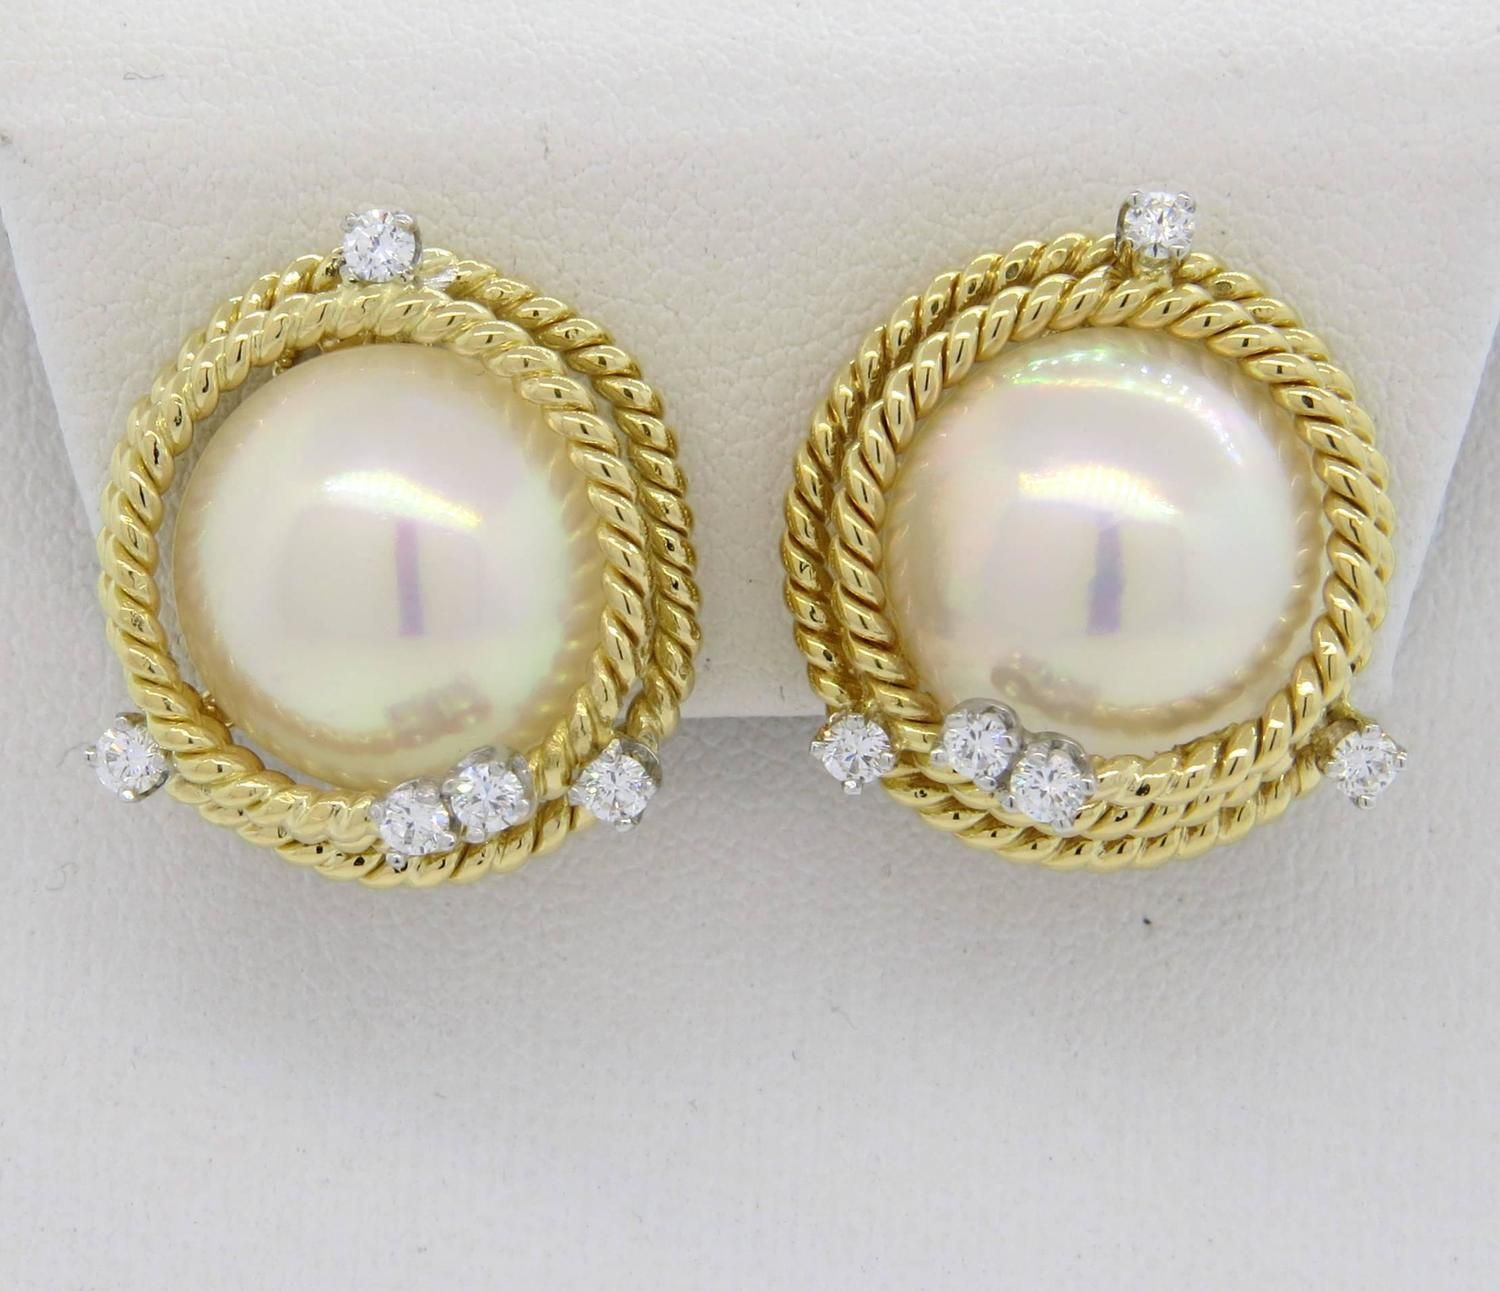 c2ef9c7c8 Tiffany & Co. Jean Schlumberger Pearl Diamond Gold Rope Earrings | From  a unique